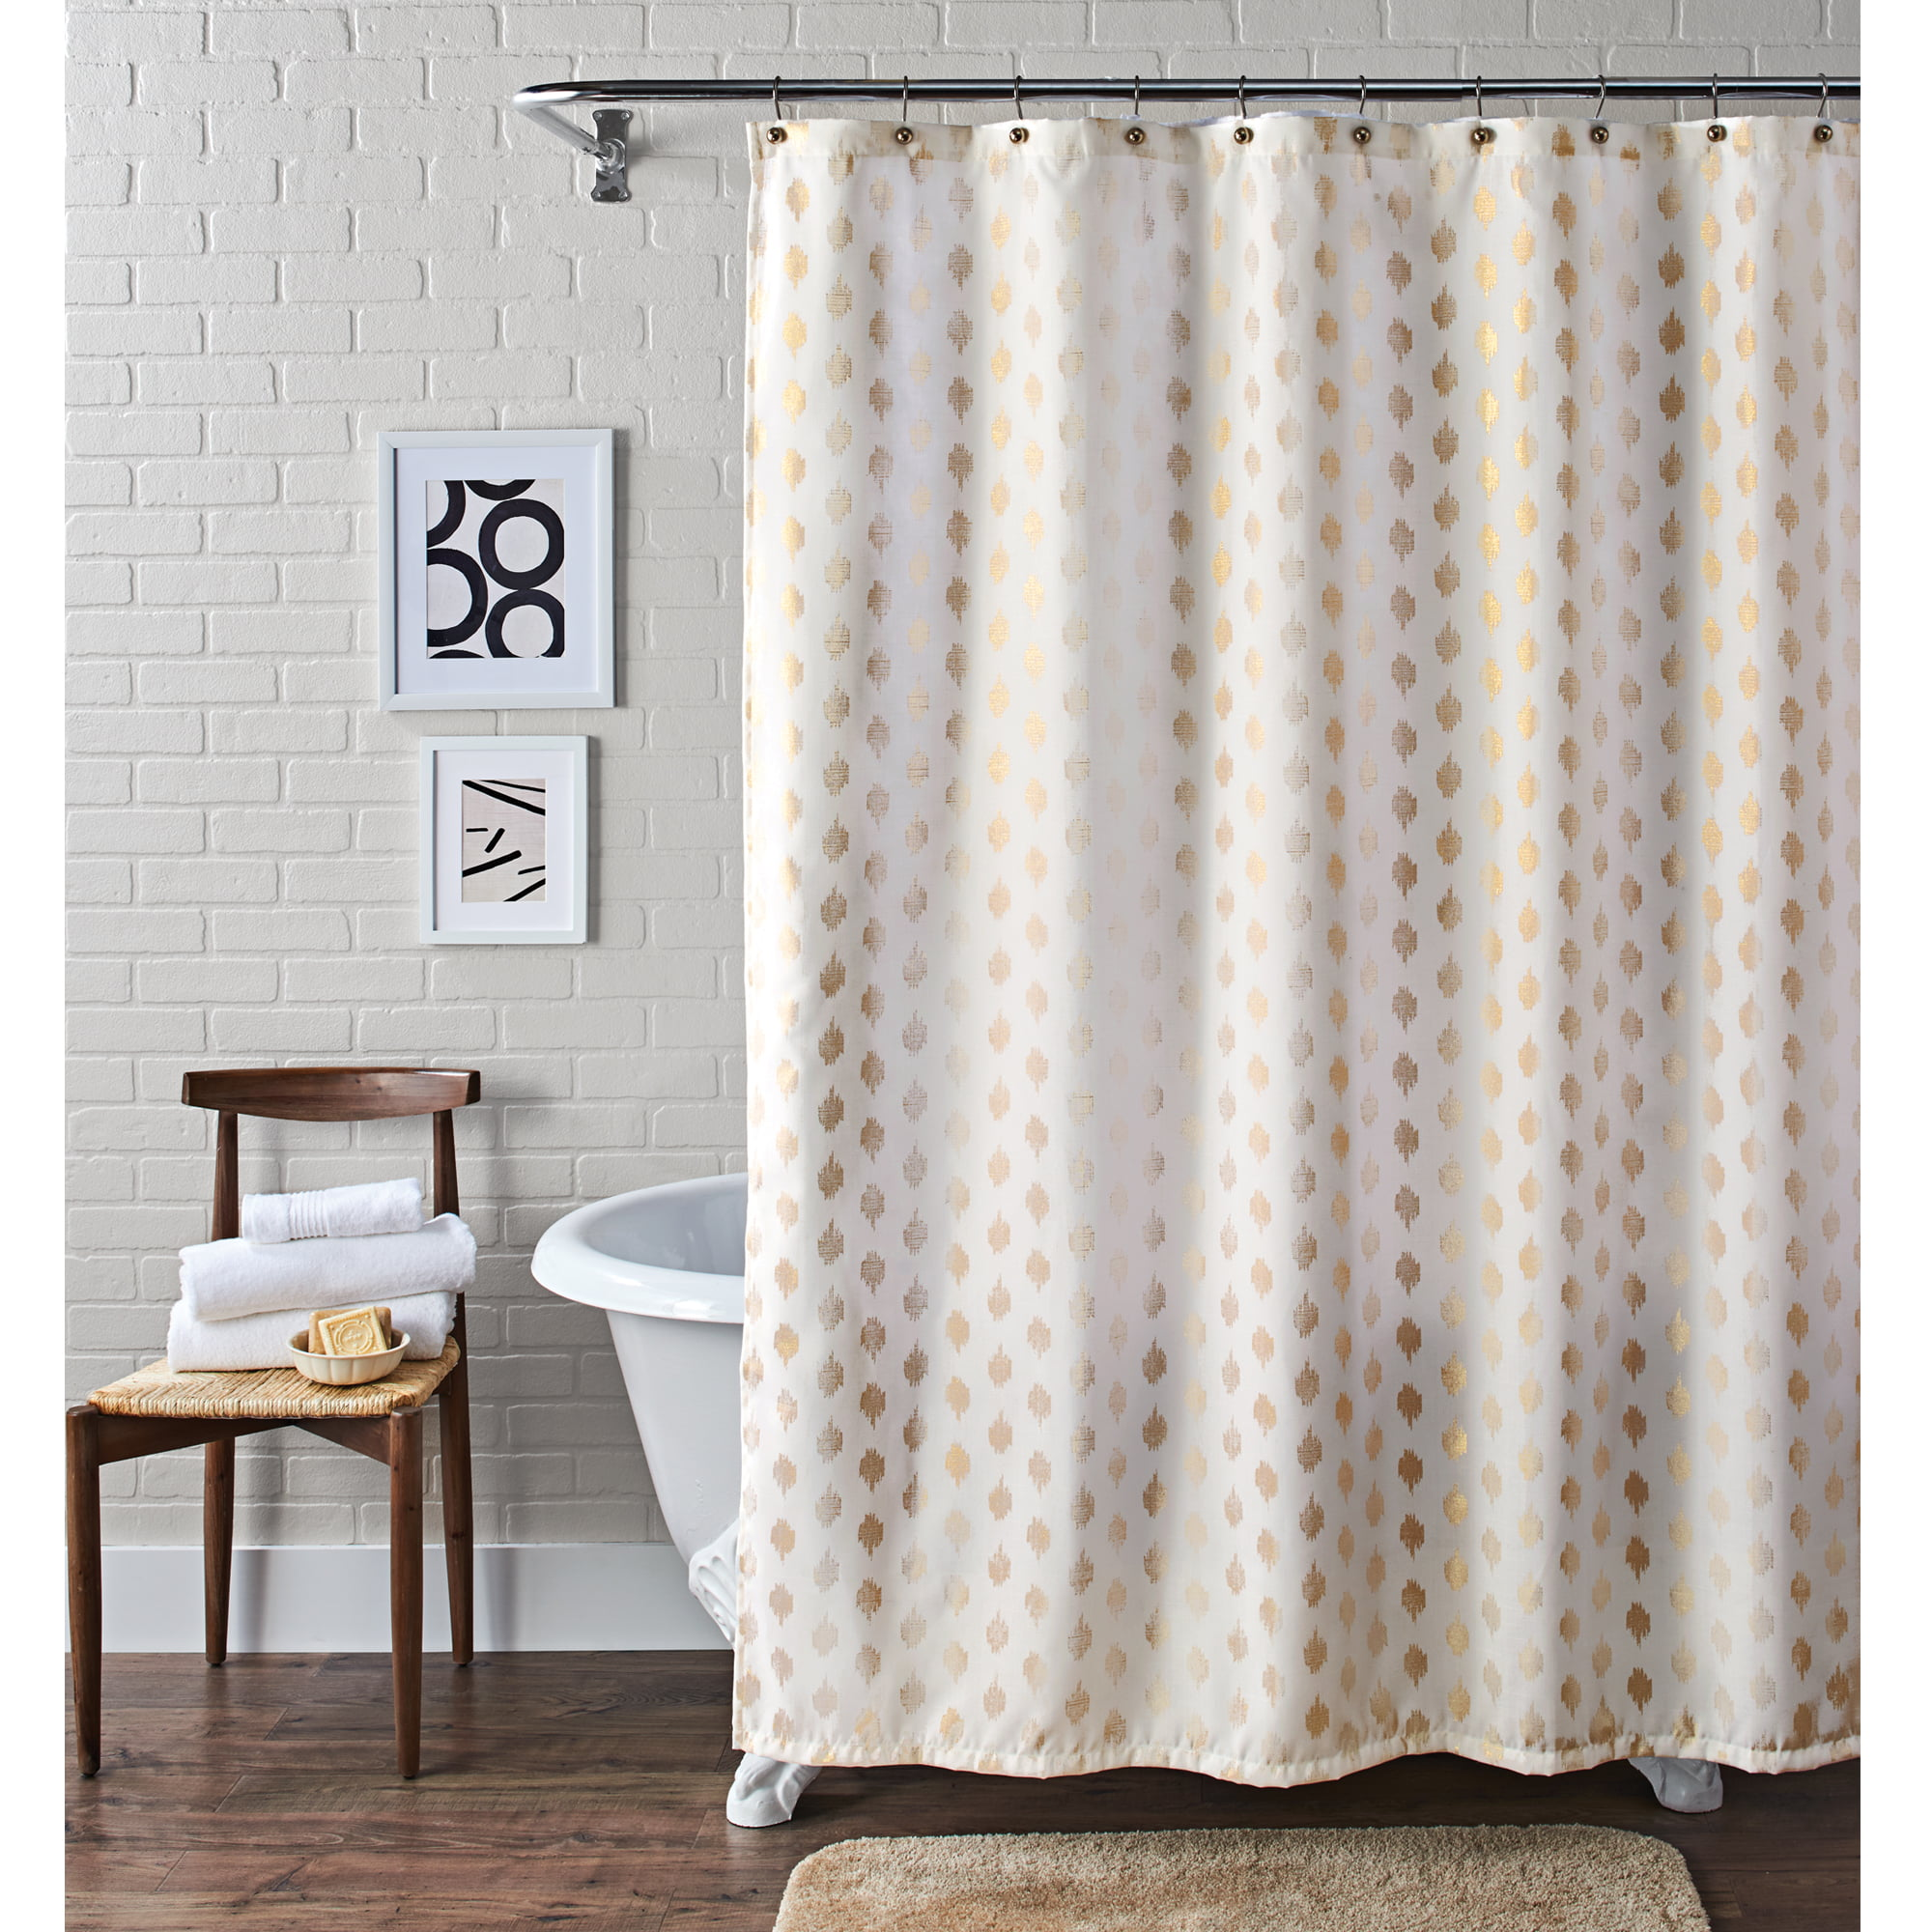 shower luxury gratograt design southwest of southwestern curtain mesa curtains inspirational photos bathroom